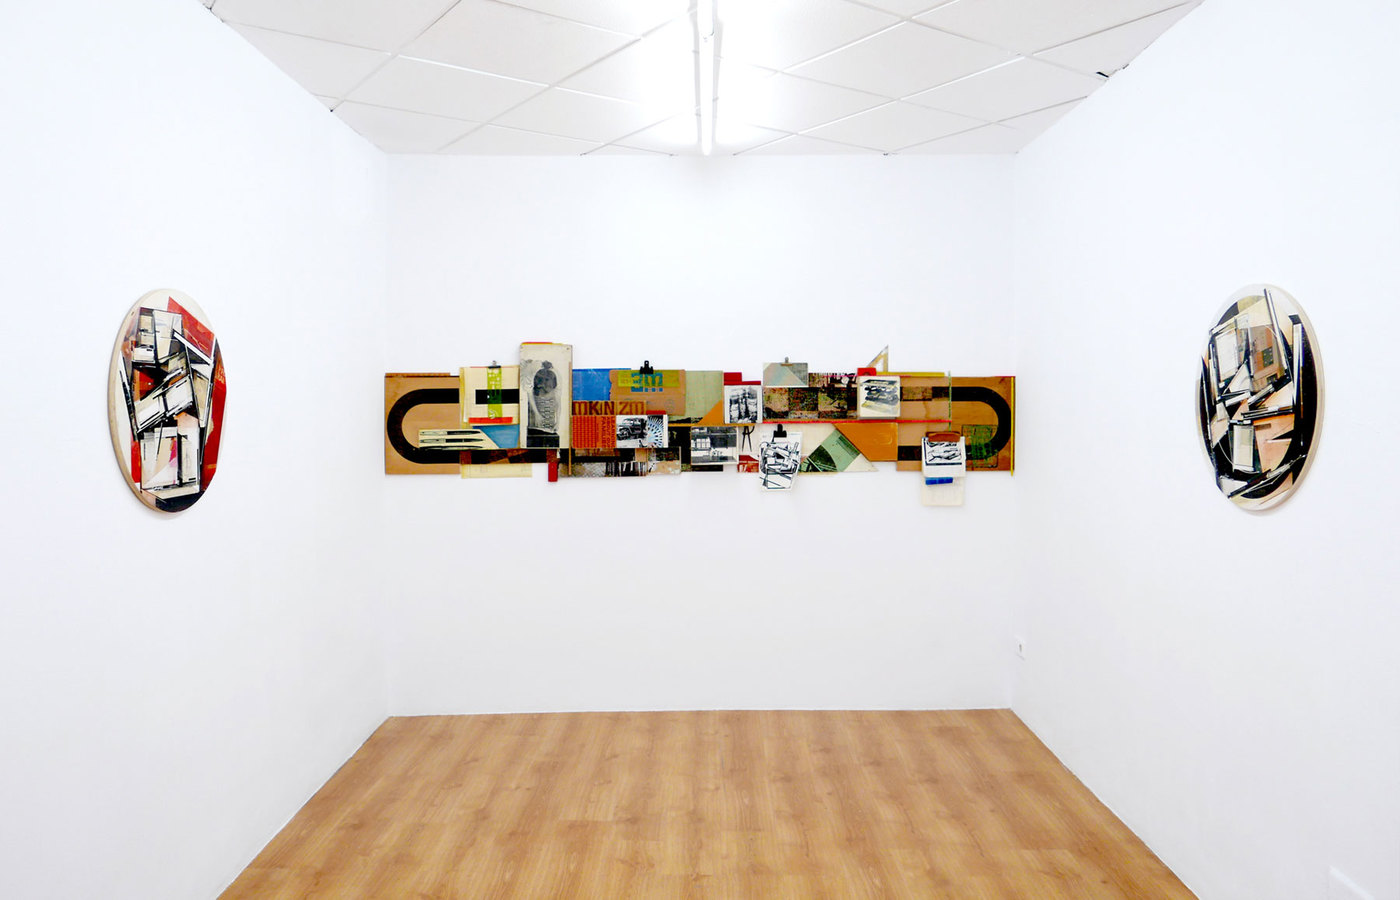 MKNZM MKNZM, installation view